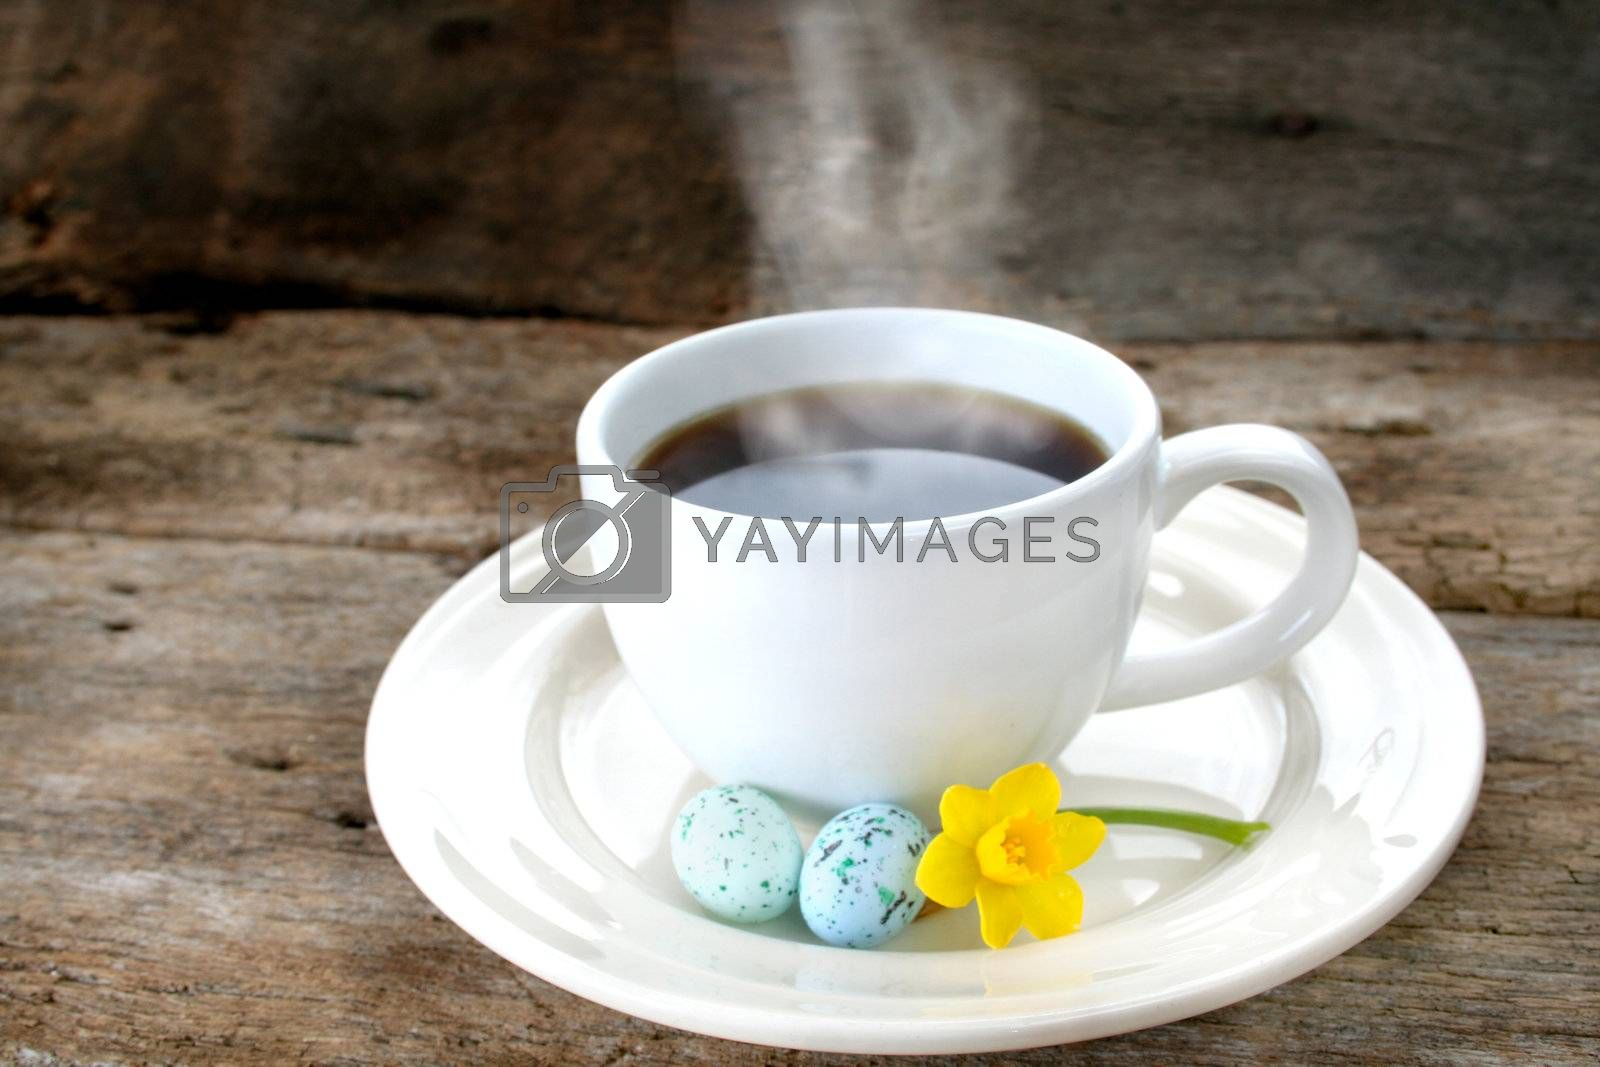 Cup of coffee with steam showing, also has Easter eggs and a daffodil on the saucer and shot on an old piece of wood for a rustic look.